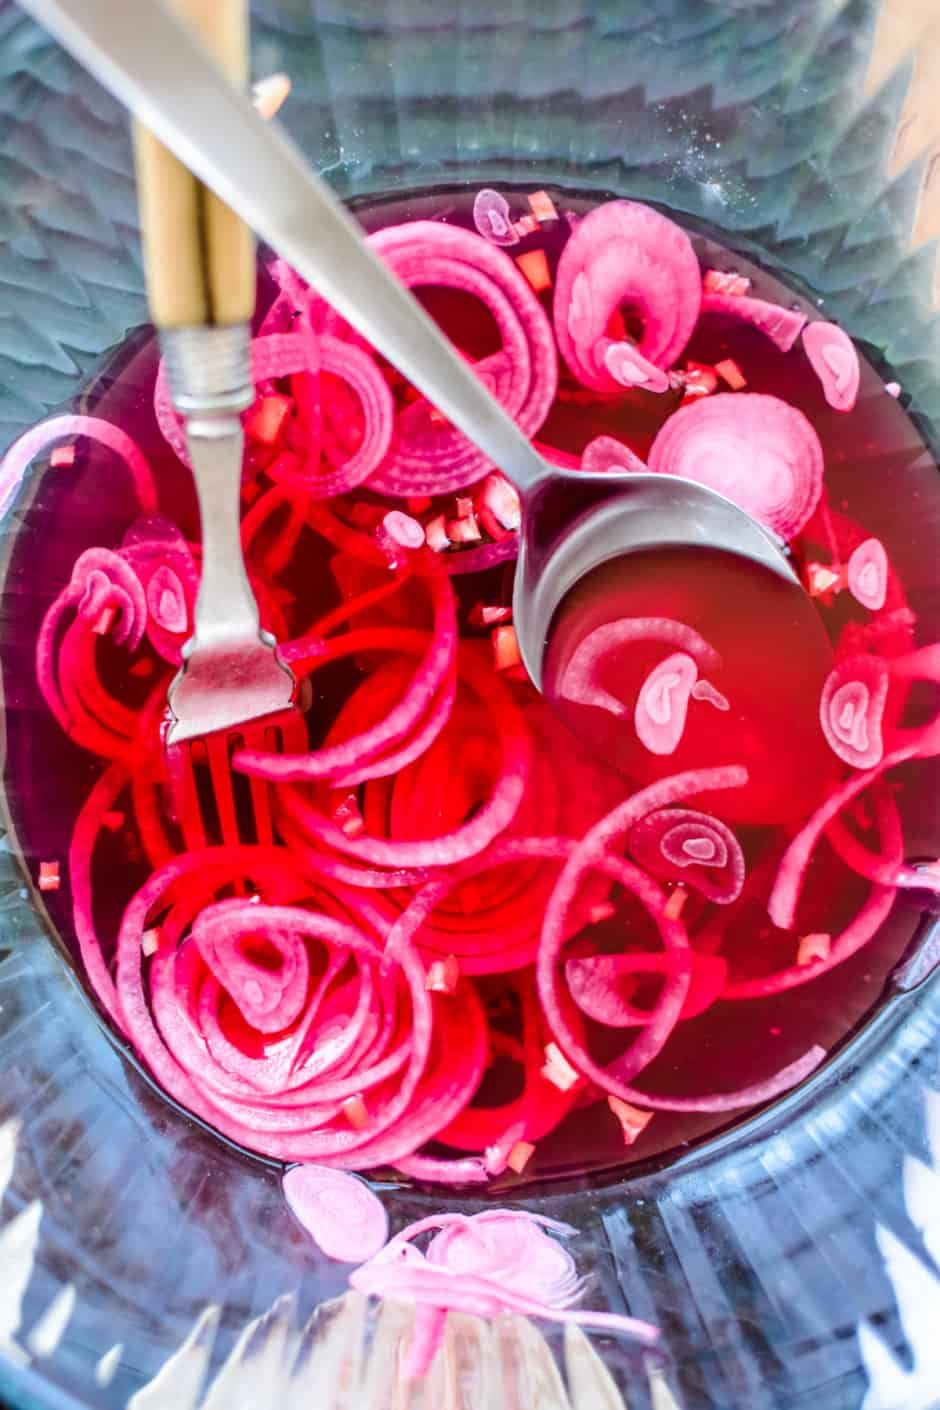 A glass bowl with sliced pickled red onions , a fork, and a spoon inside of it.